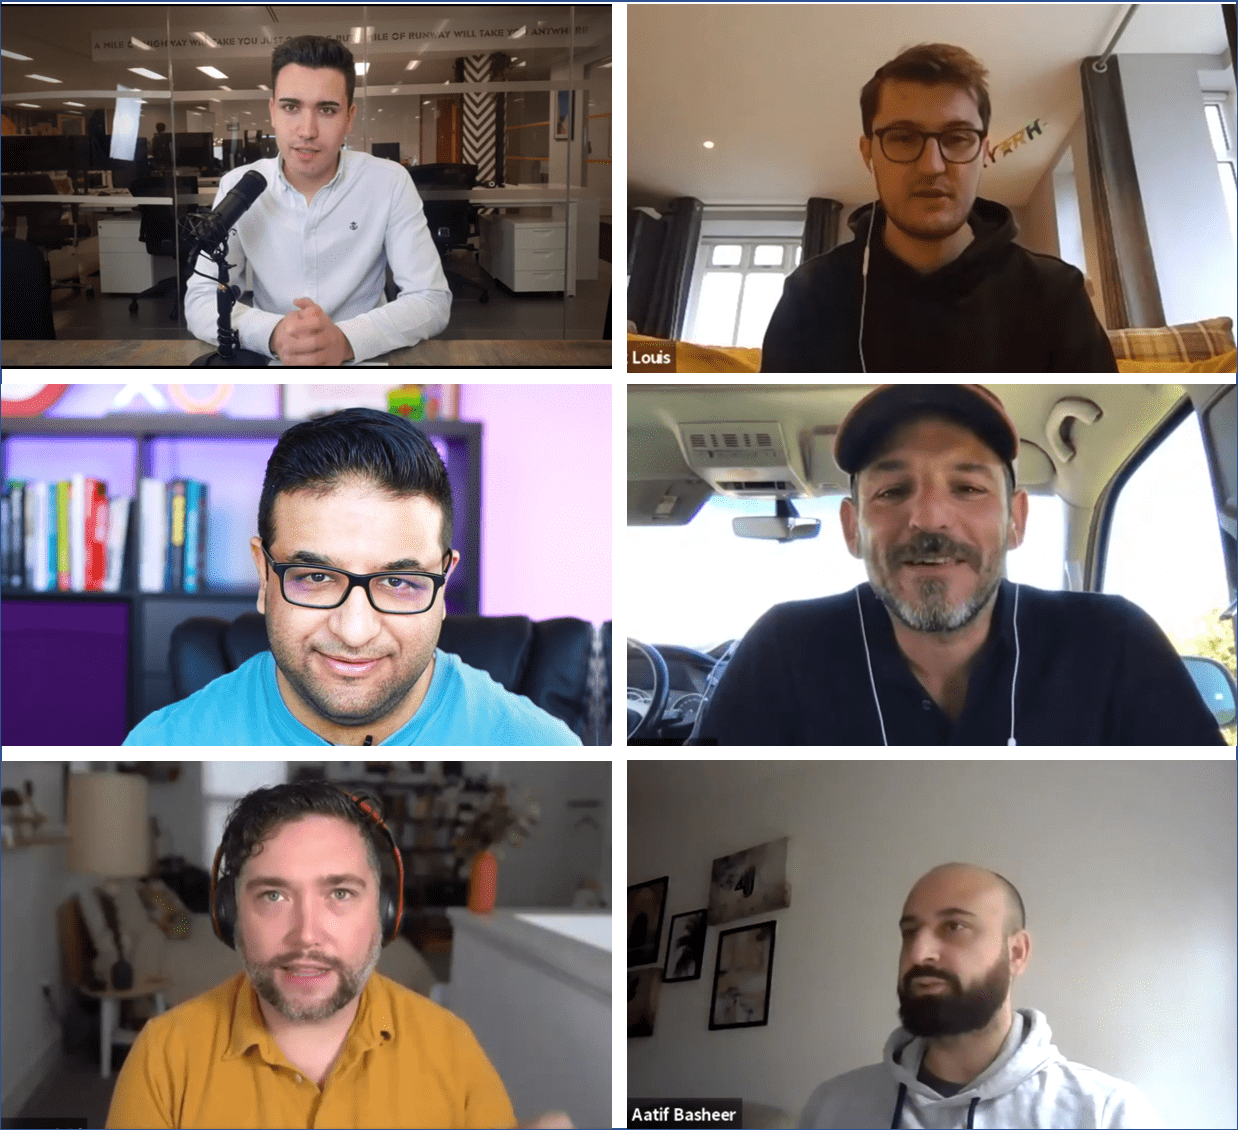 Podcast guests and hosts